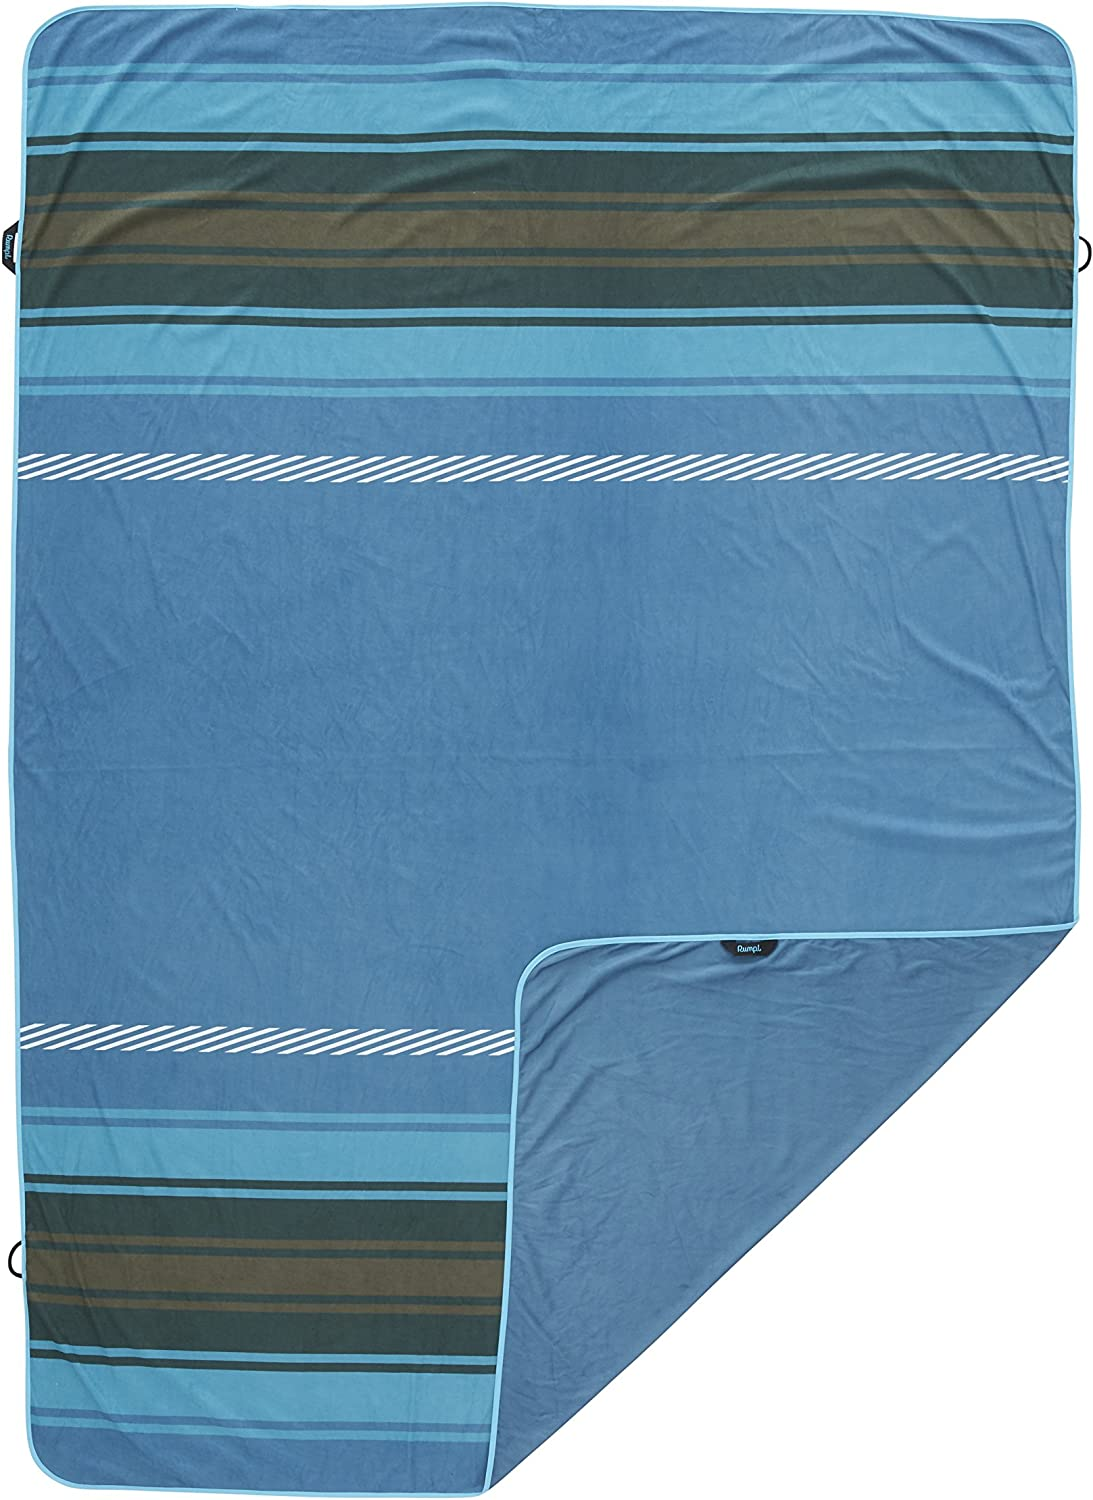 Rumpl The Shammy Towel   Super Absorbent Towel for Travel, Baths, Yoga, Beach Trips, Swimming, Dishes, Sports, and More   2Person, Slate blueee